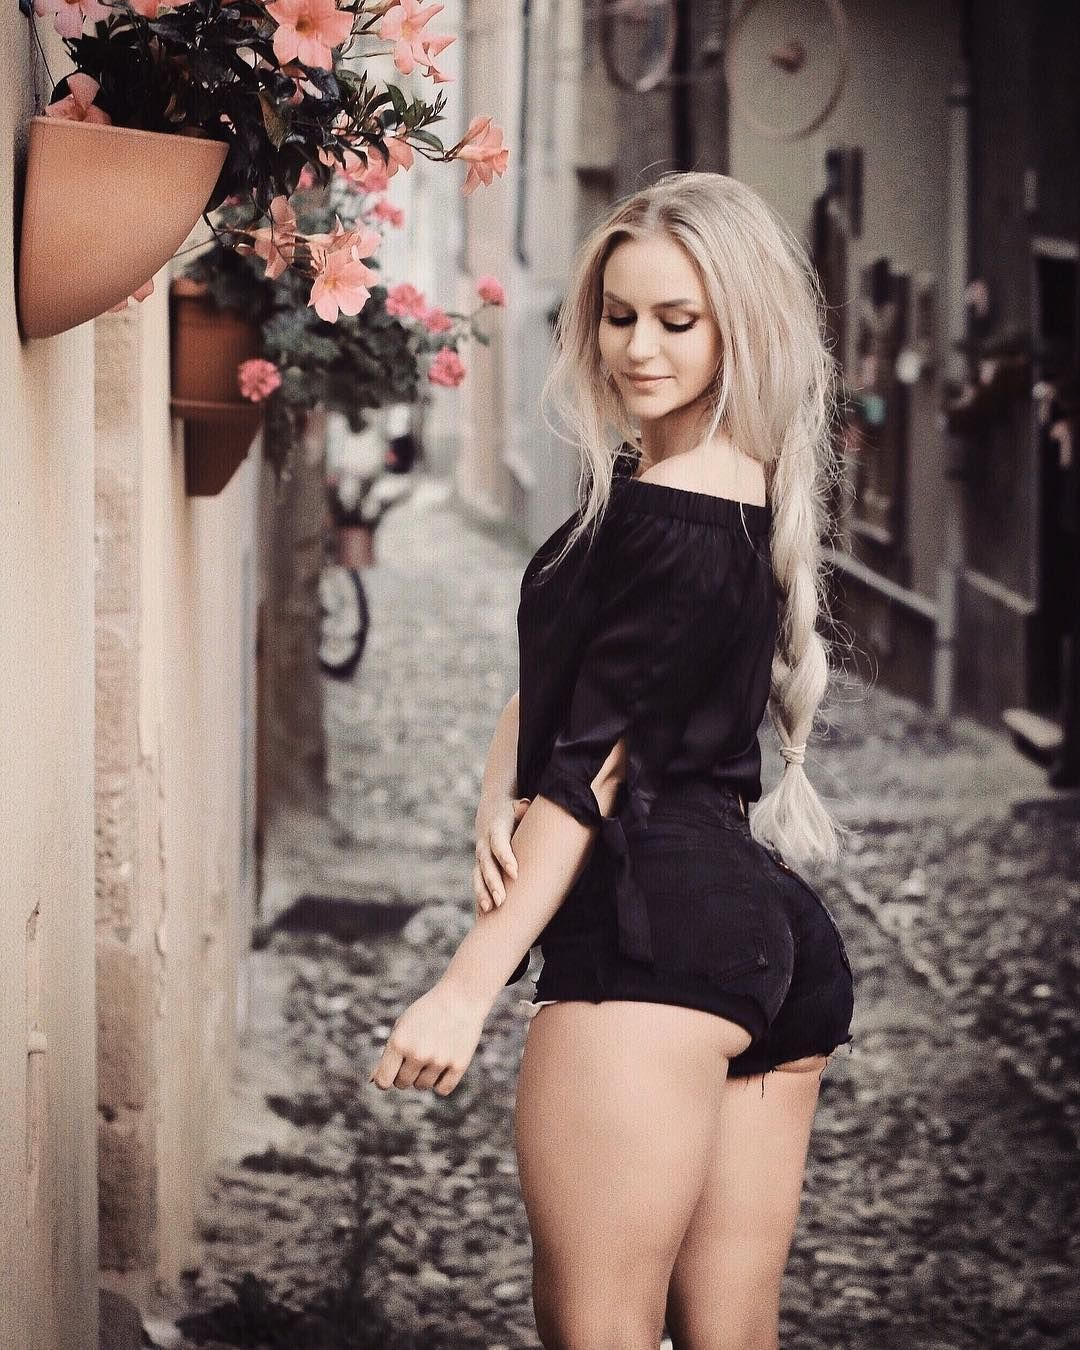 that interfere, but, best fast sex appeal sex sushi clips near me that can not participate